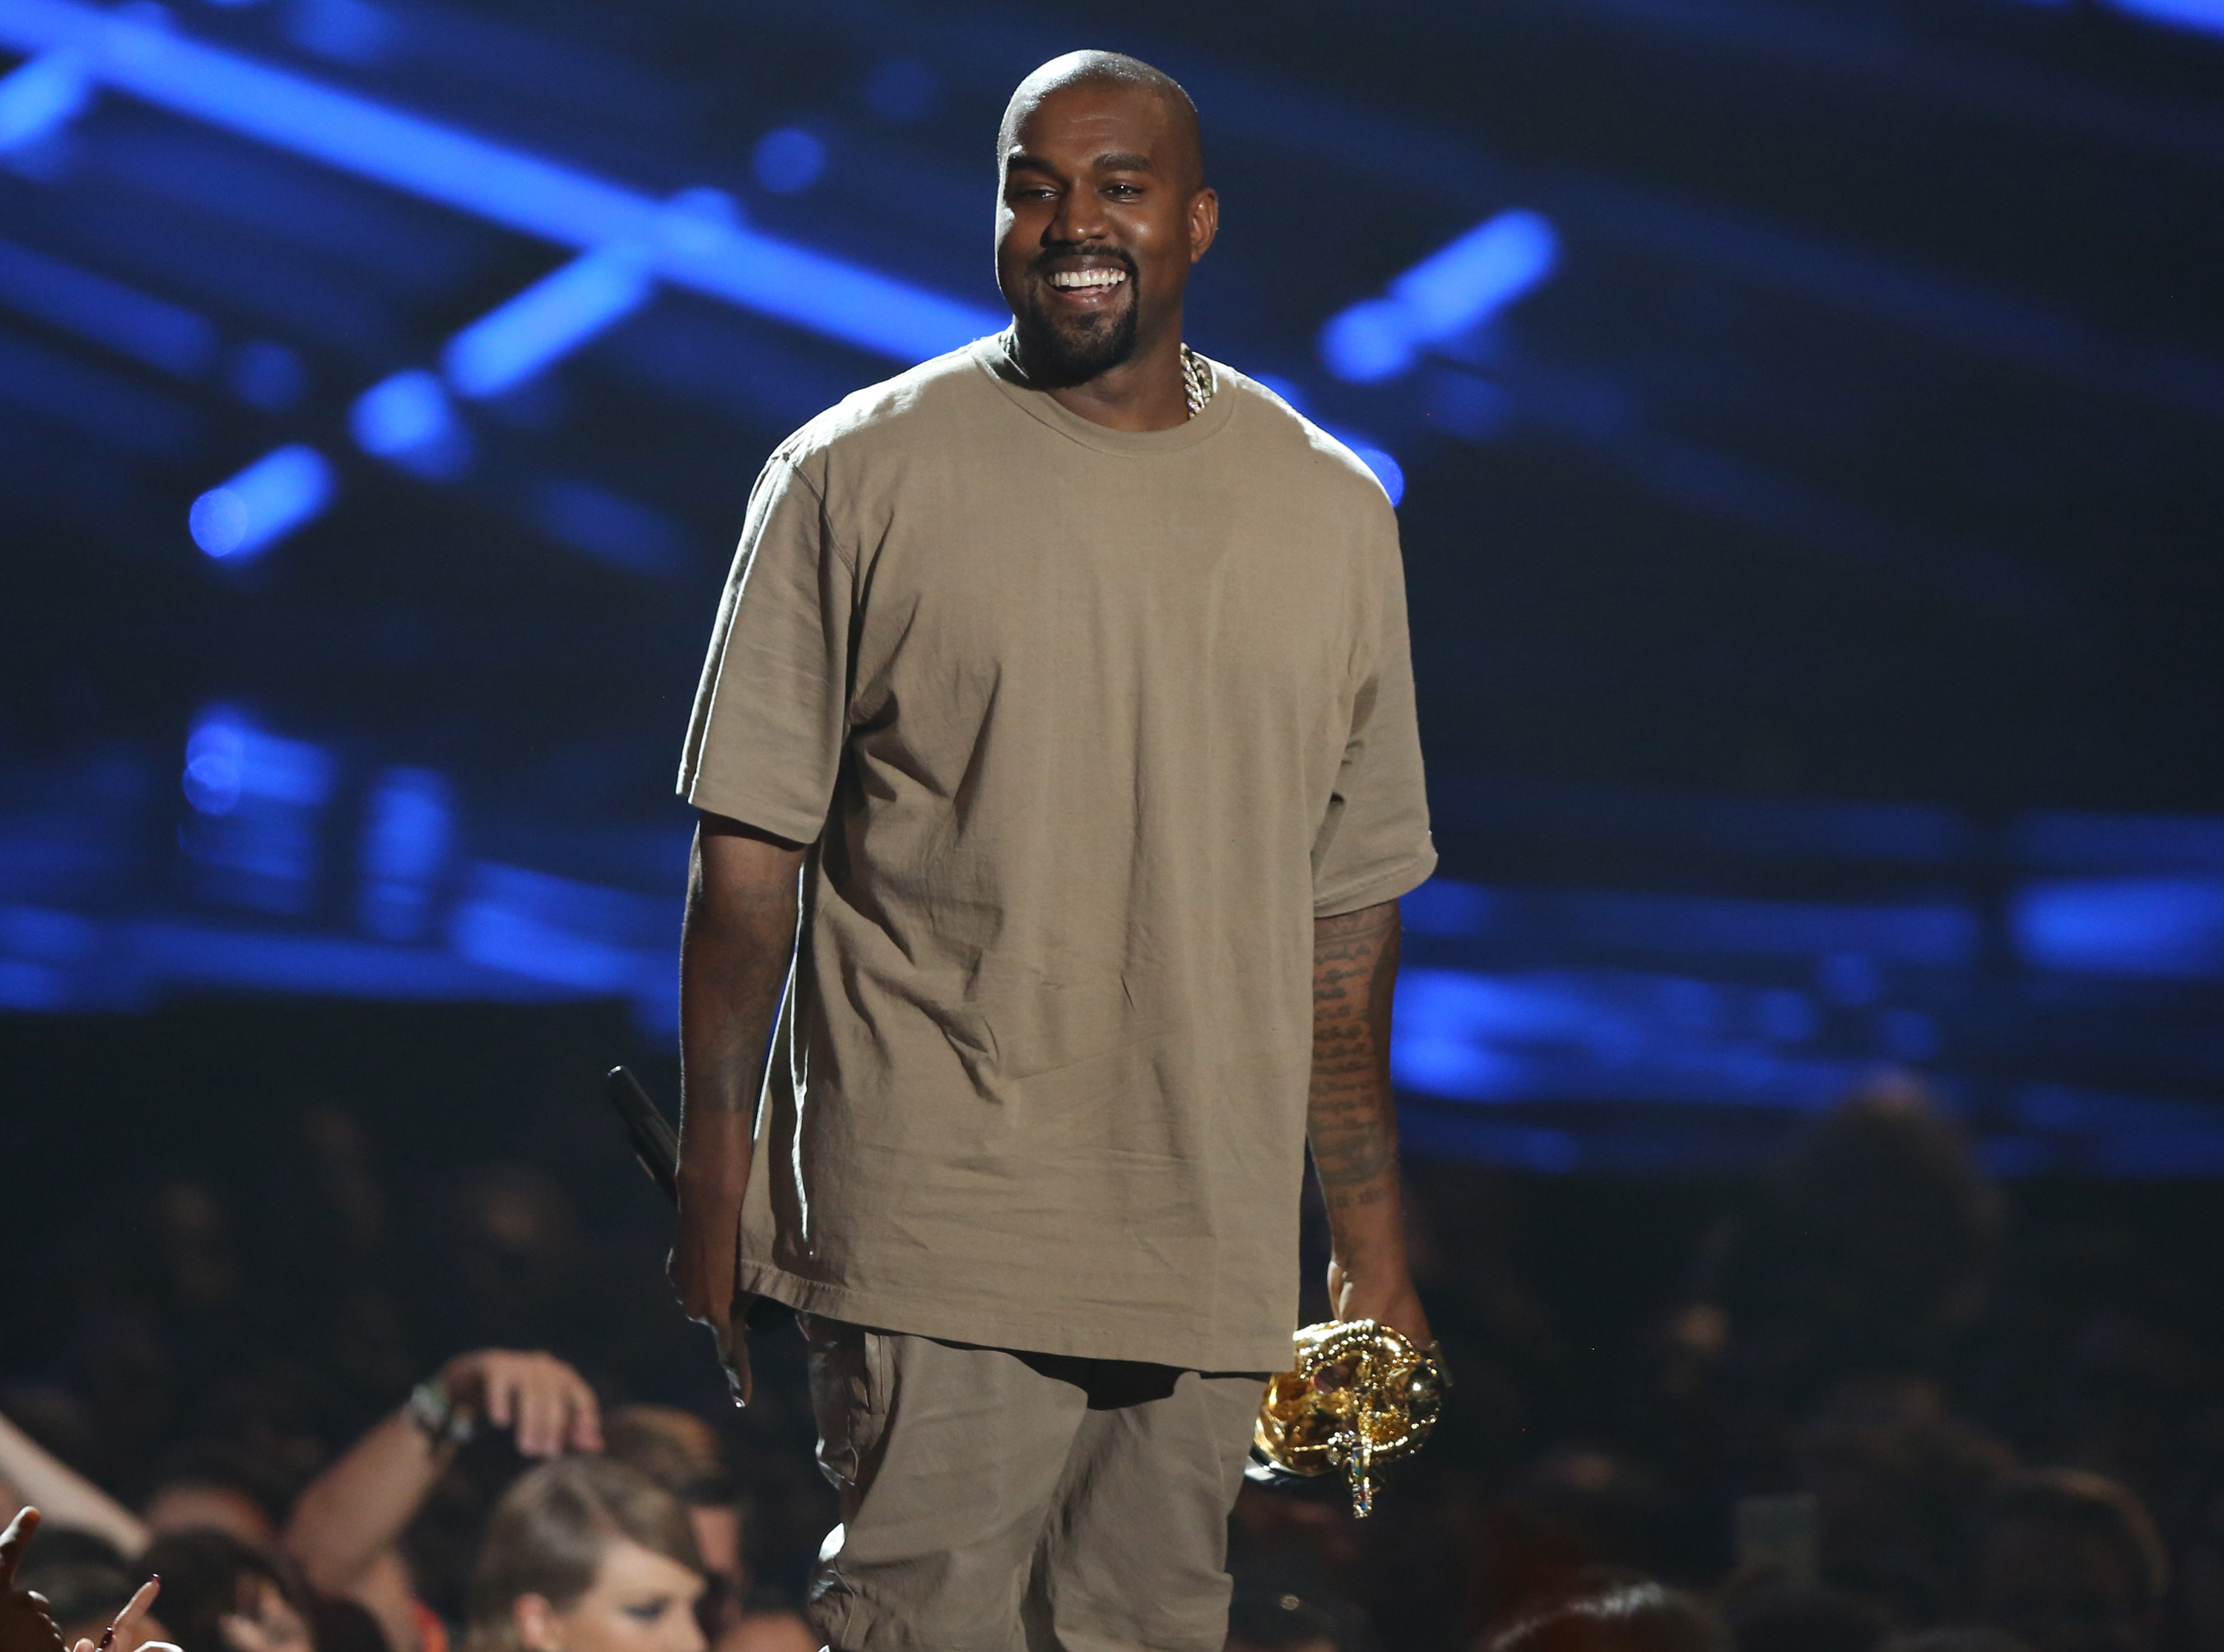 Kanye West accepts the video vanguard award at the MTV Video Music Awards at the Microsoft Theater on Aug. 30, 2015, in Los Angeles.